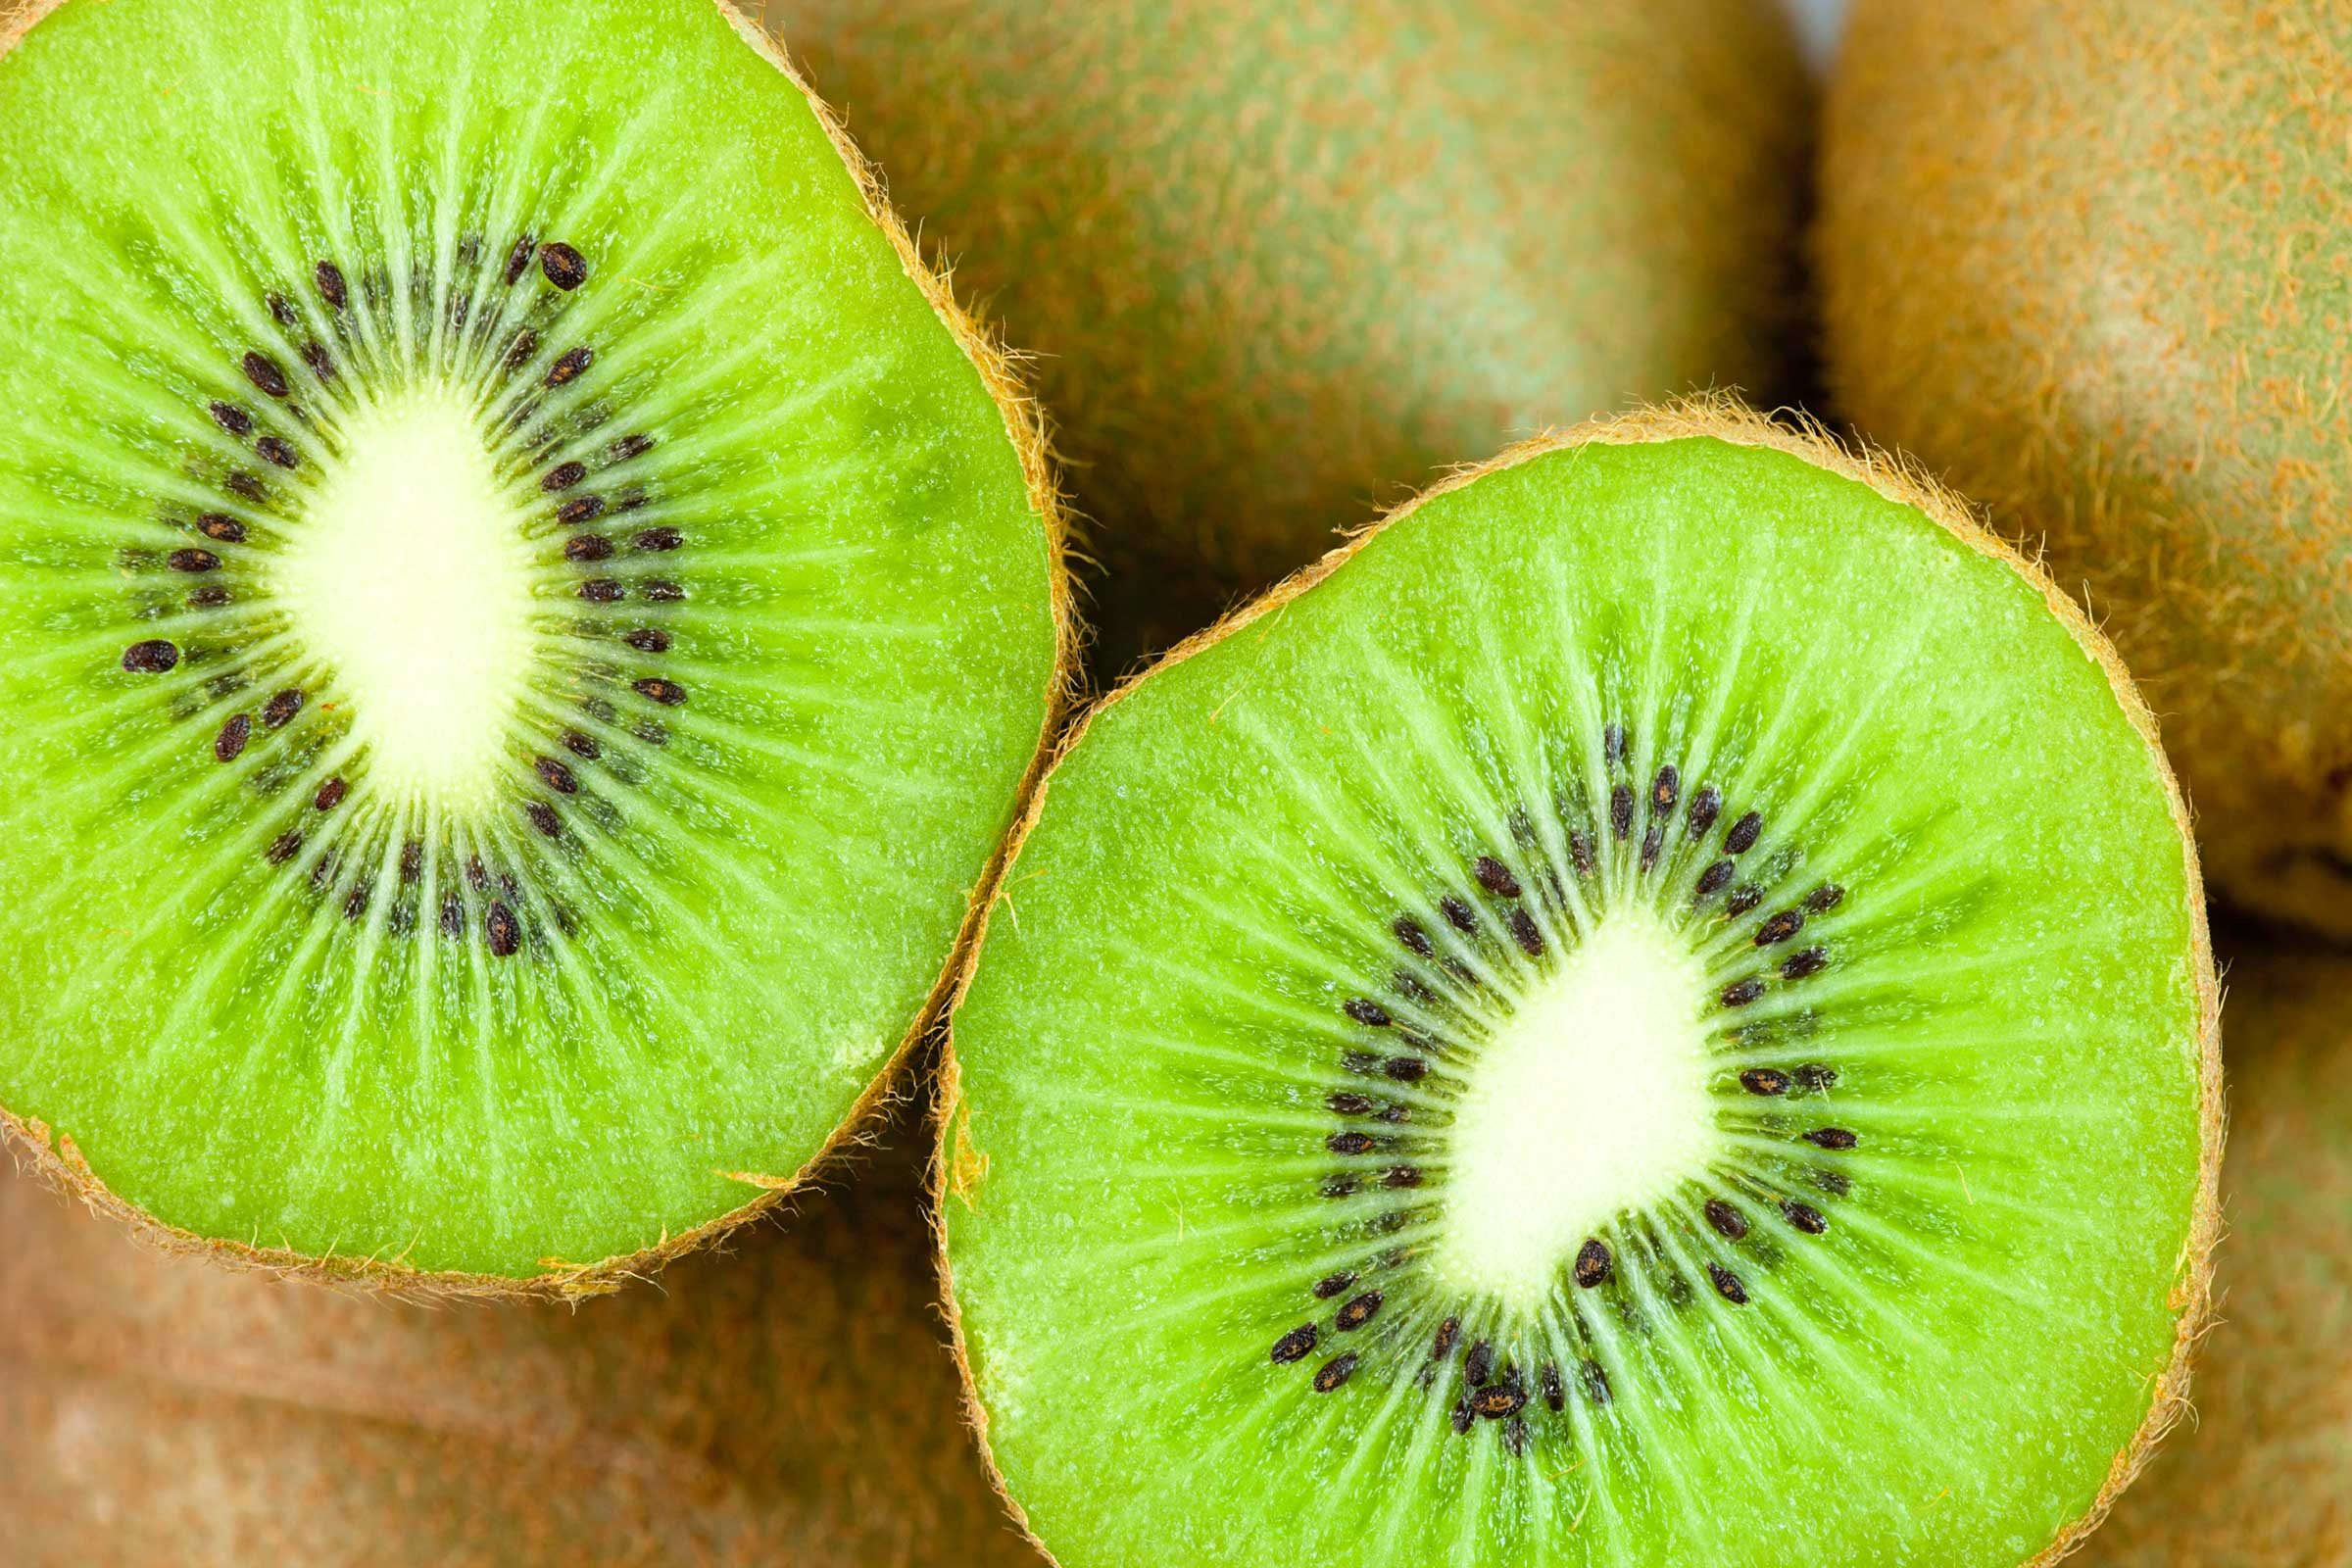 Cut a kiwifruit in half, then scoop out the flesh with a spoon